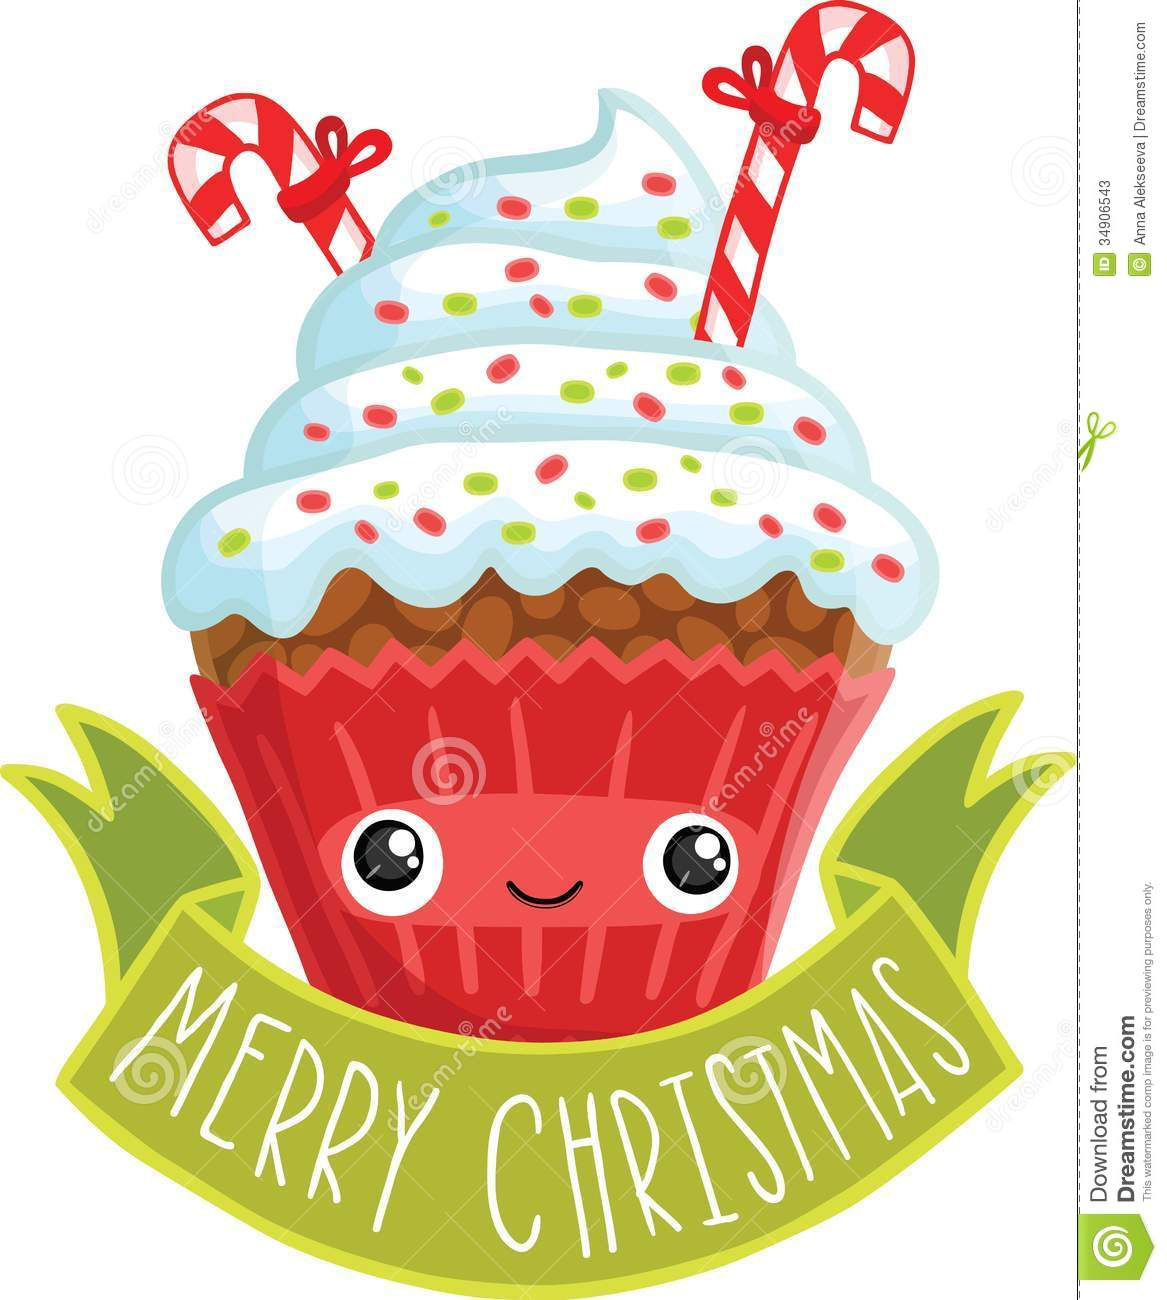 Smiling Cupcake  Cute Cartoon Christmas Muffin Illustration